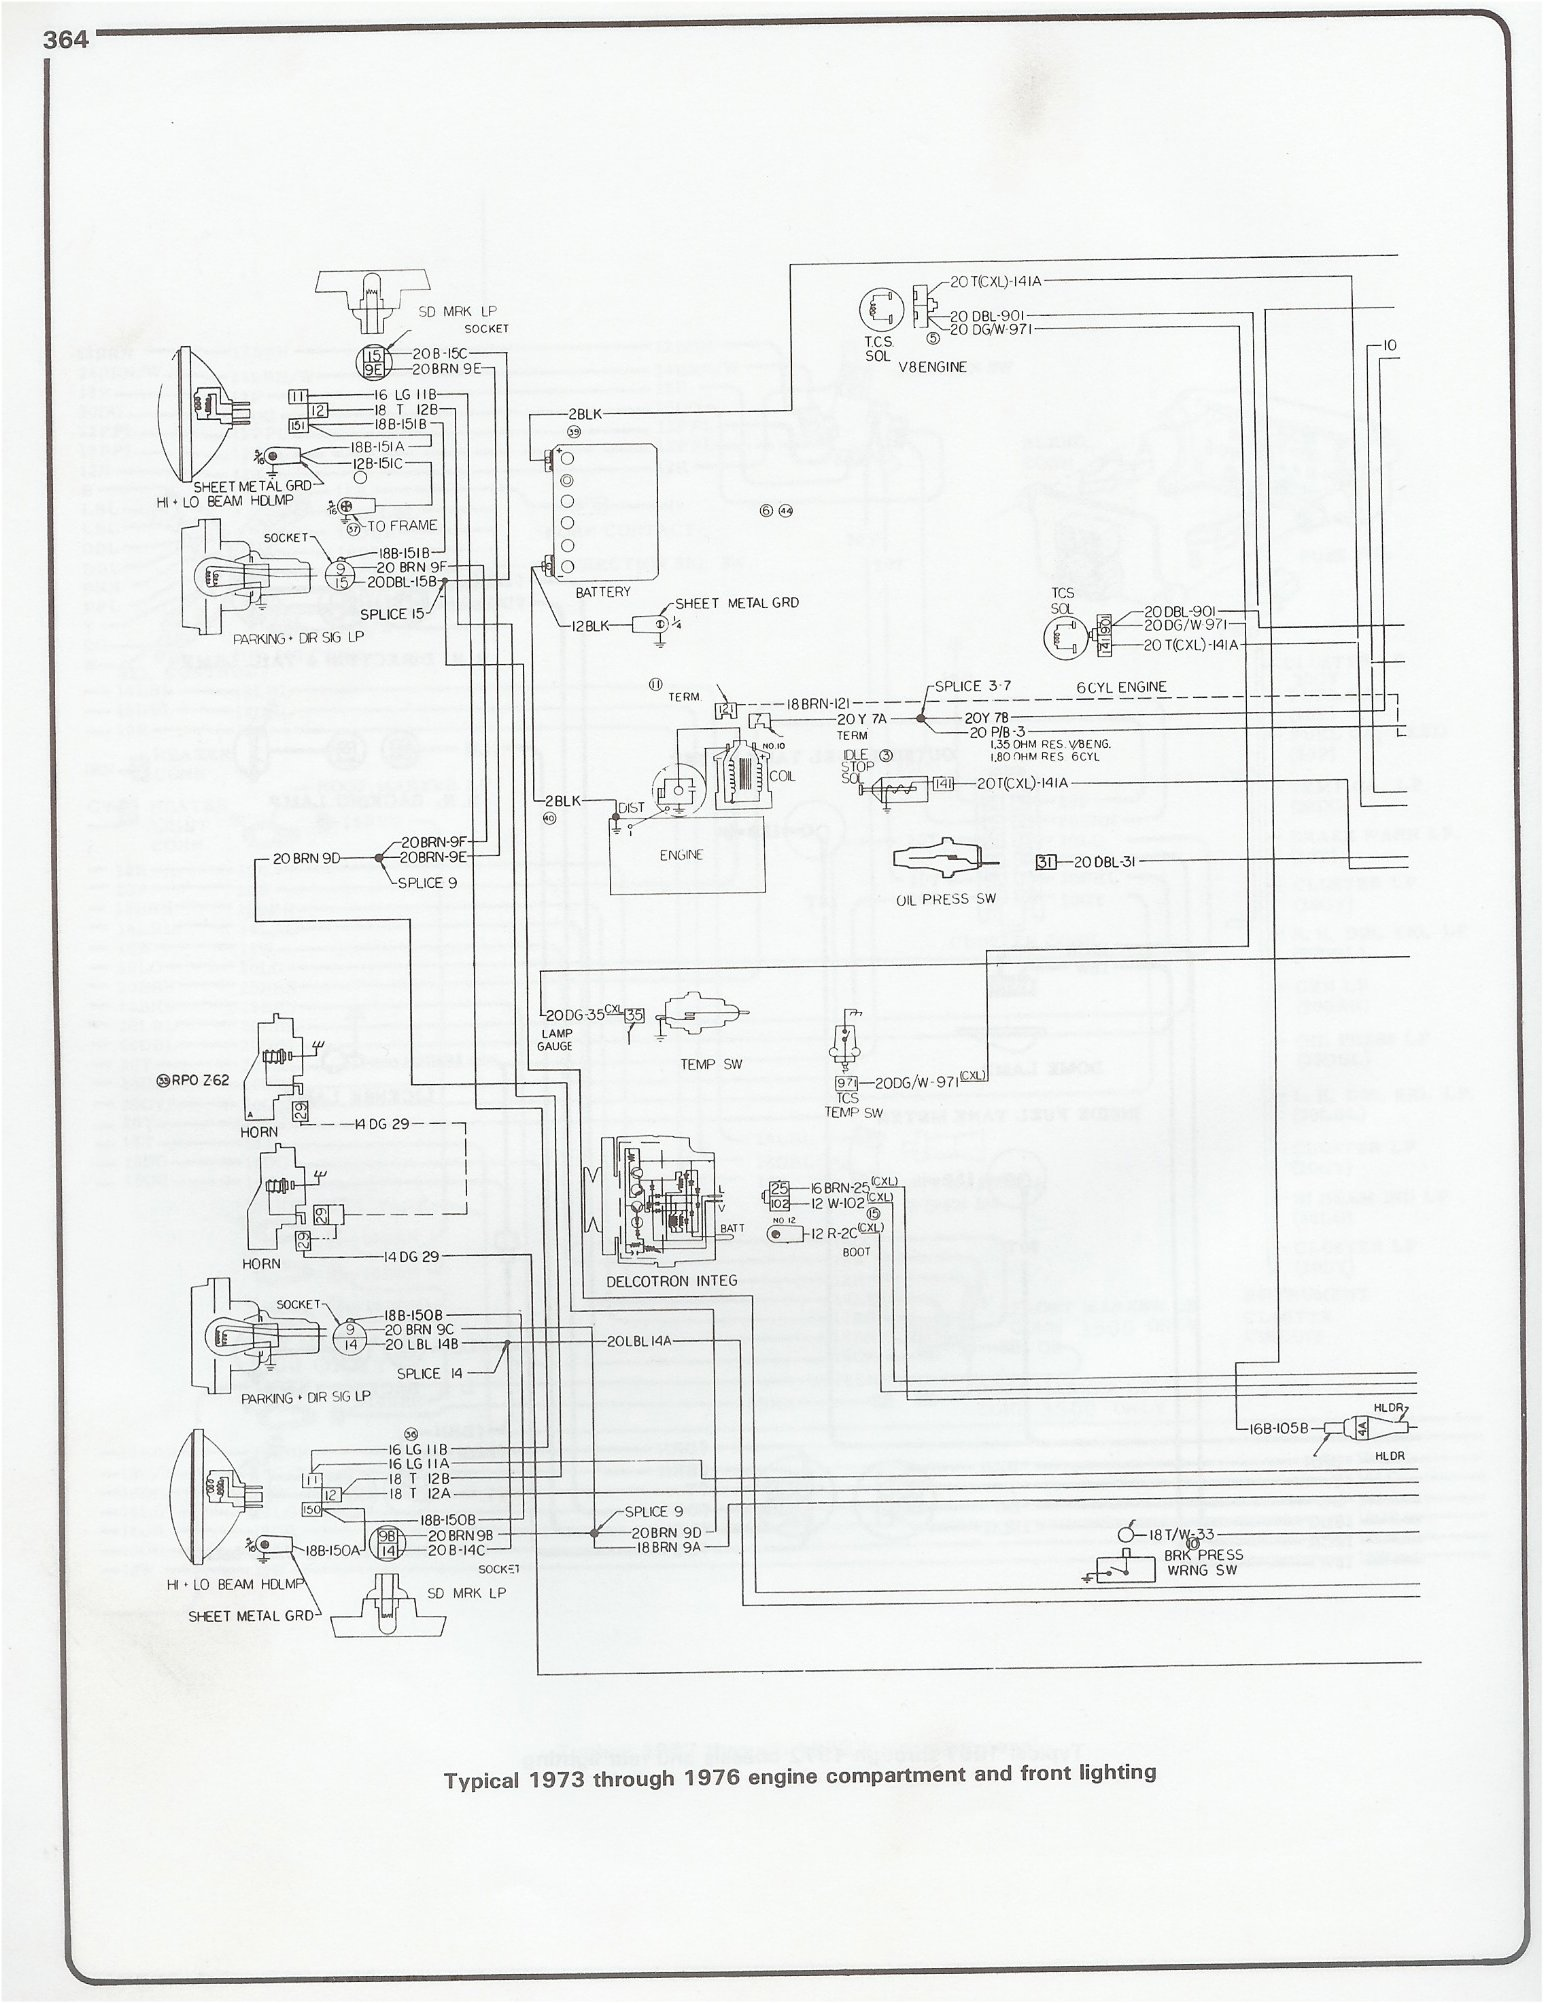 1970 Chevy Pickup Wiring Diagram Headlights Fuse C 10 Headlight Complete 73 87 Diagrams73 76 Engine And Front Lighting